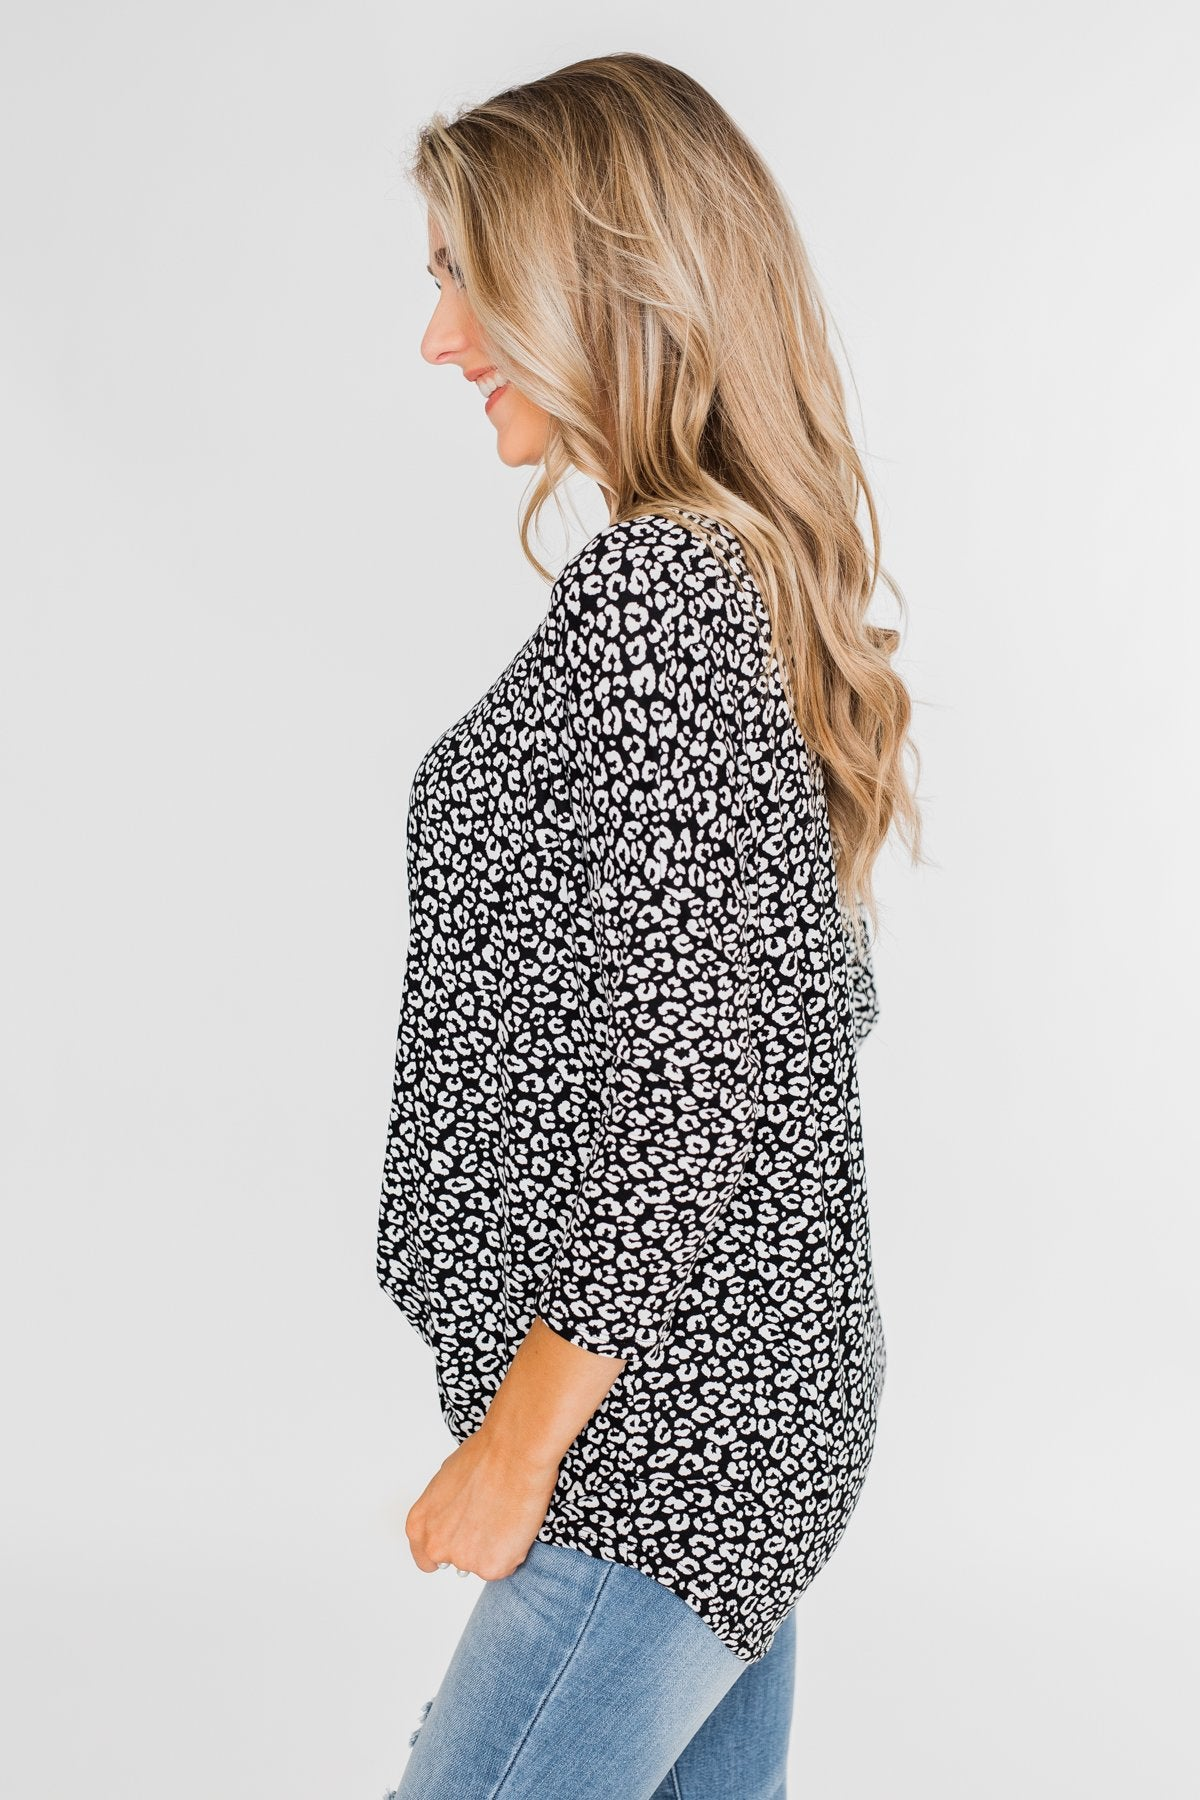 For a Little While Leopard Twist Top- Black